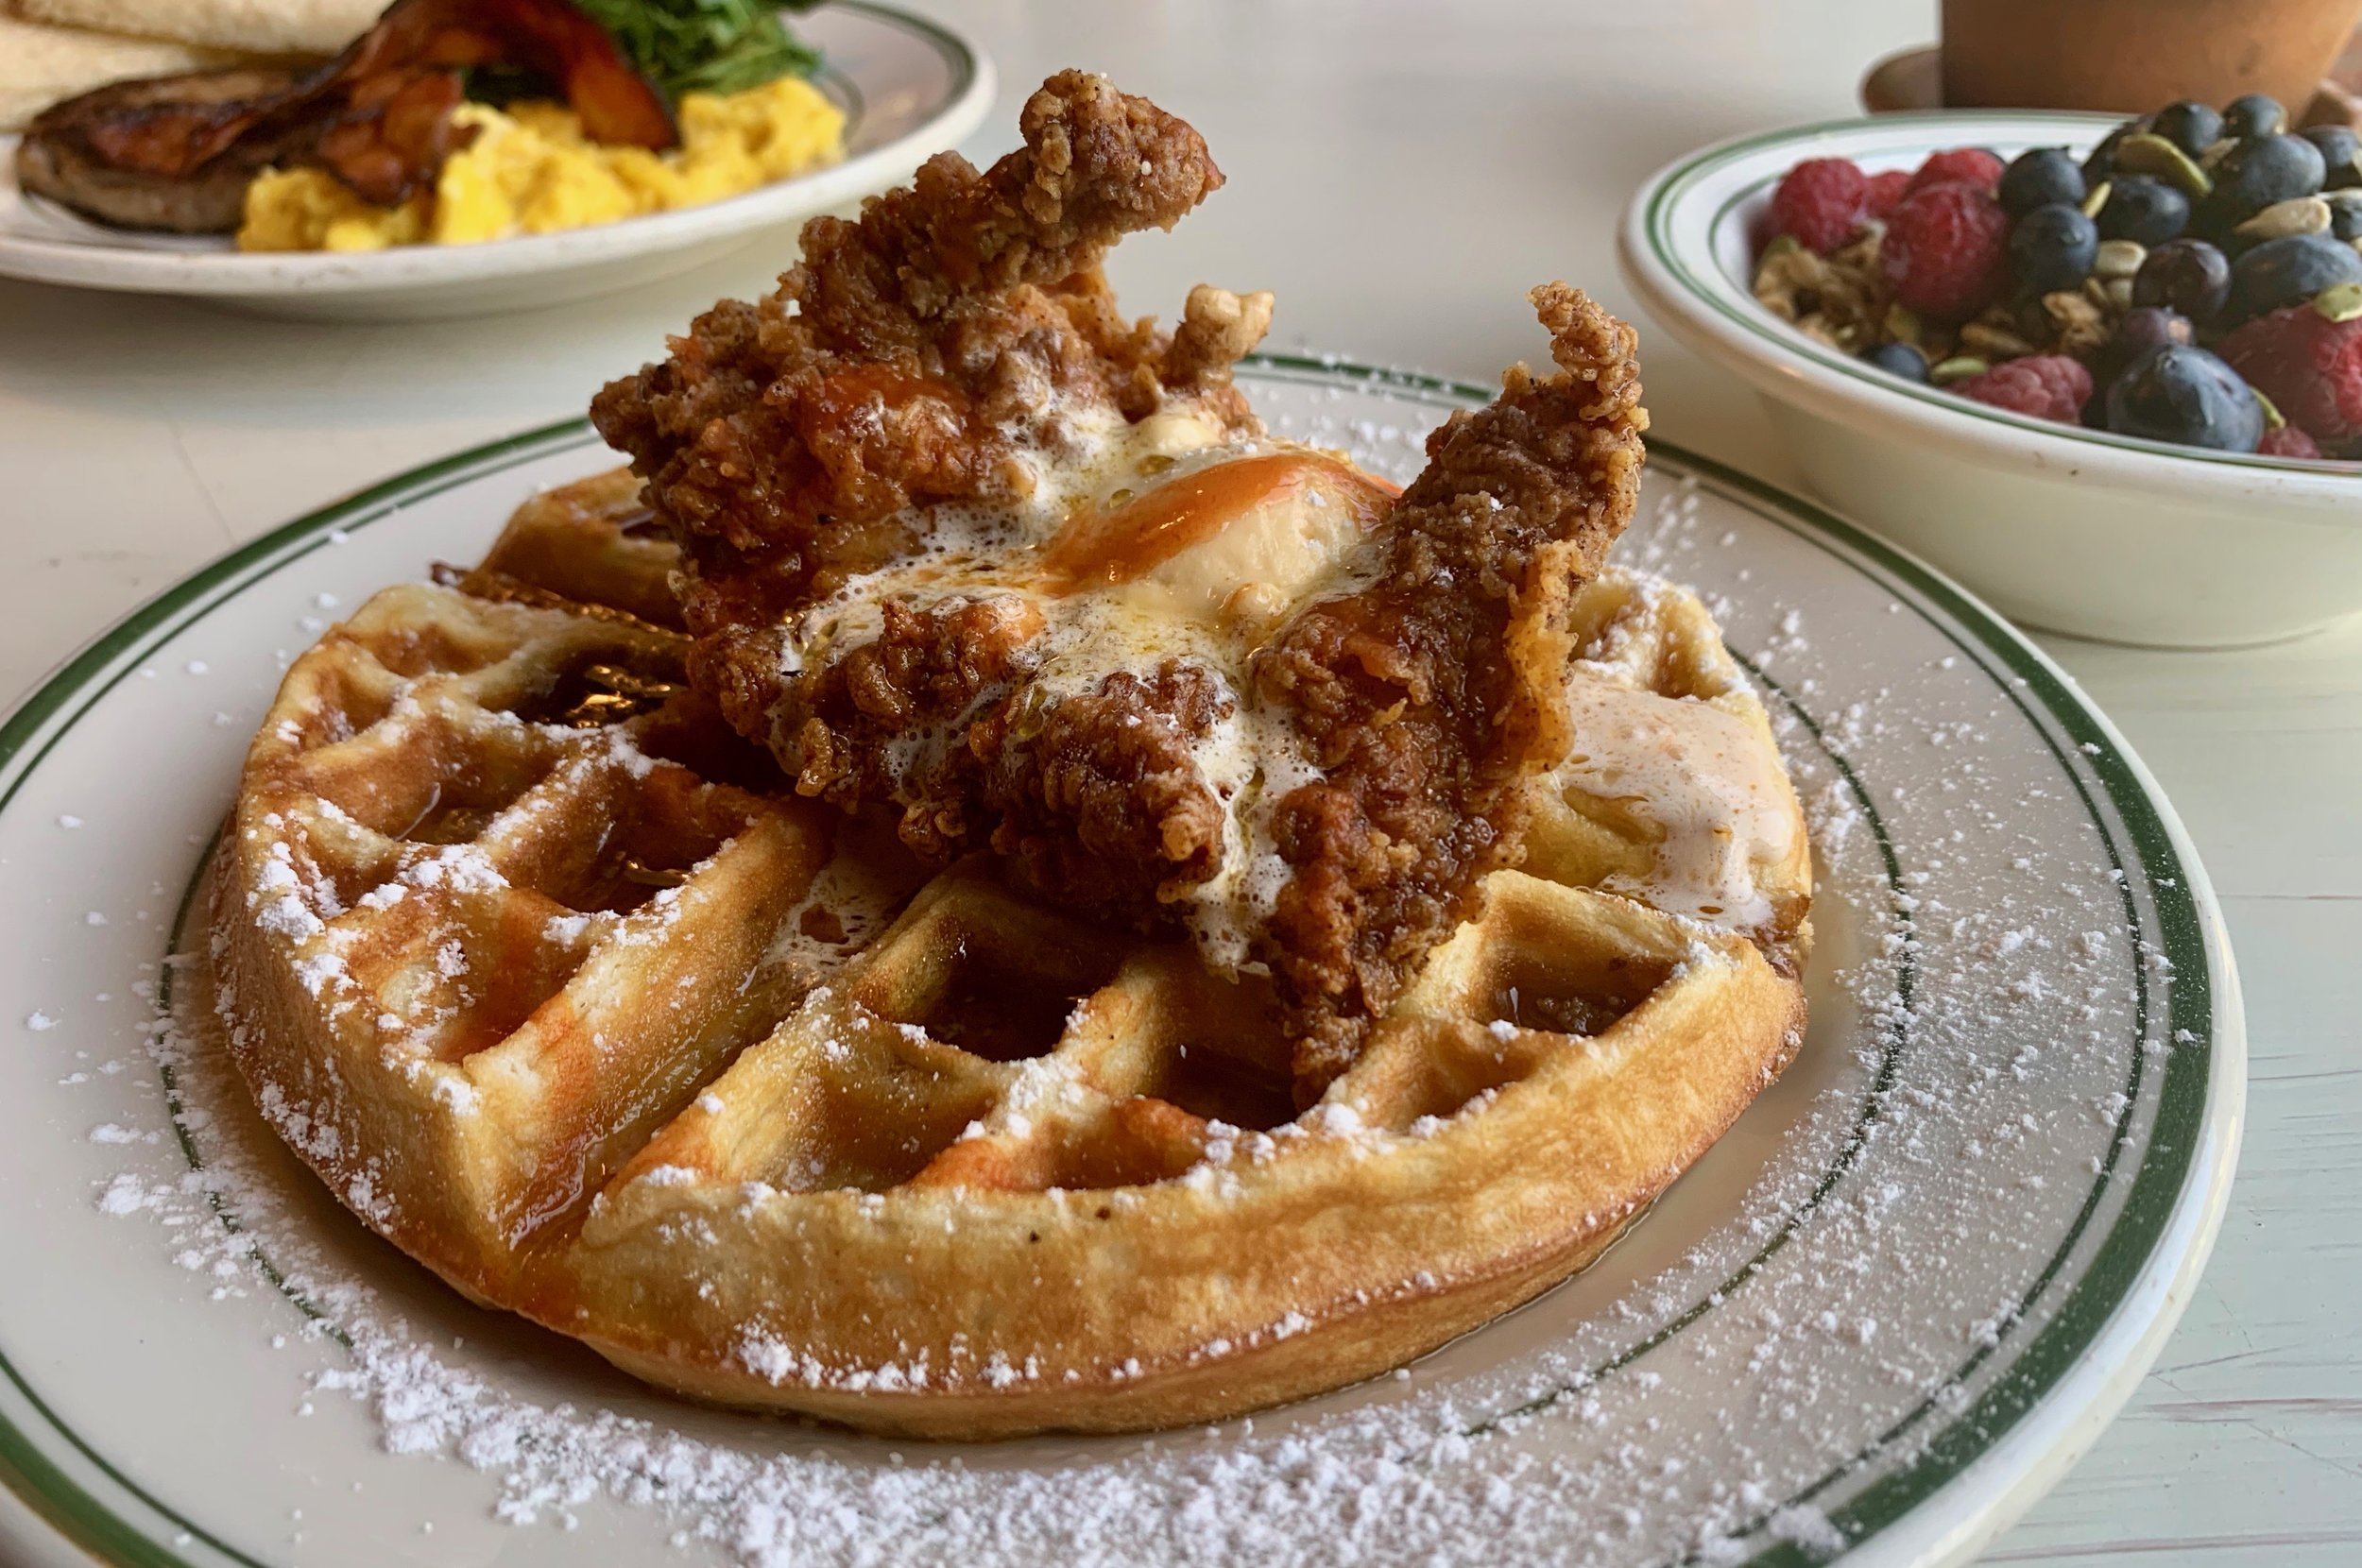 Best Catskills brunch: Fried chicken and waffles at Glen Falls House